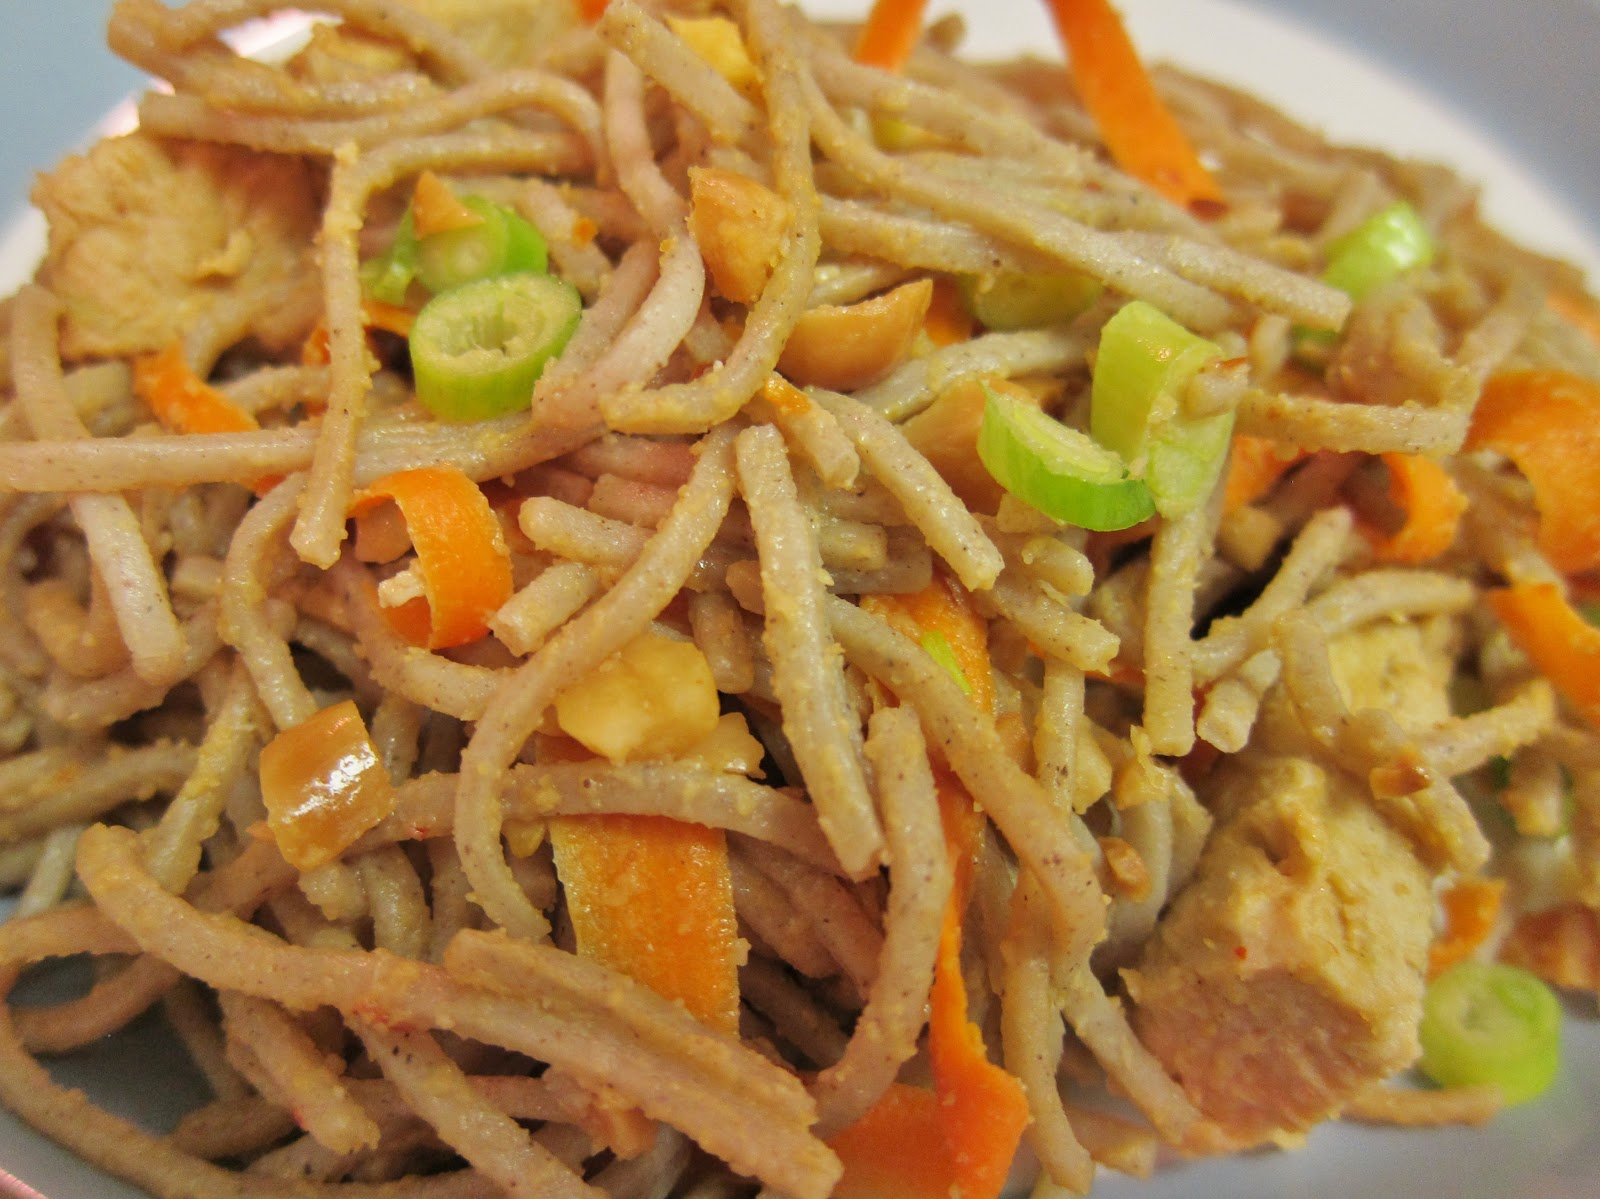 The Vegan ChronicleSpicy Soba Noodles with Chicken in Peanut Sauce